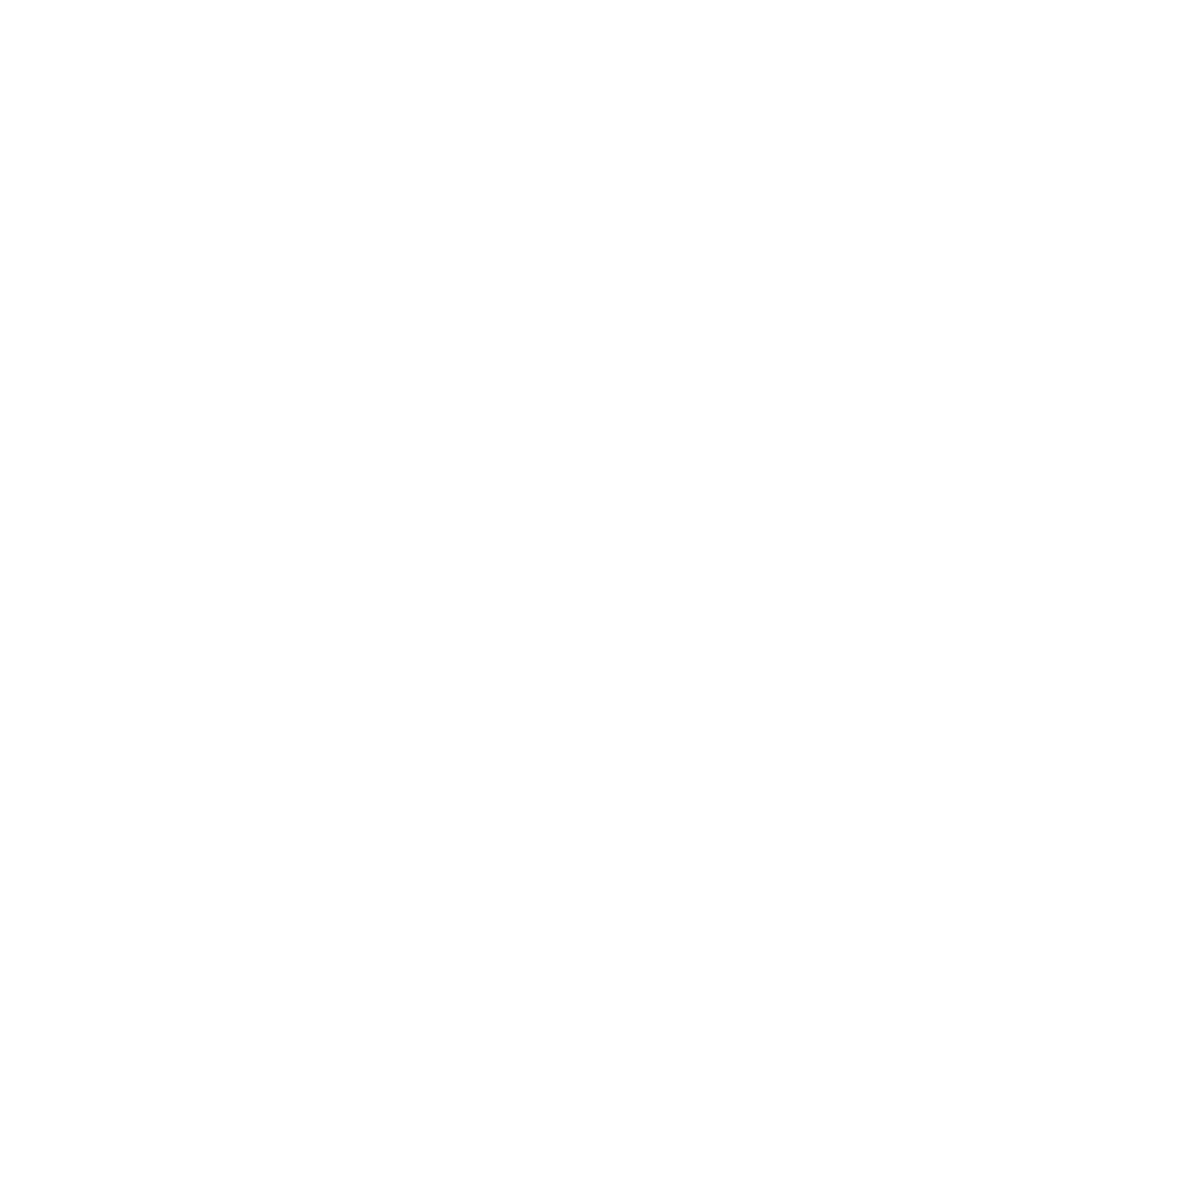 Cross & Crown Church